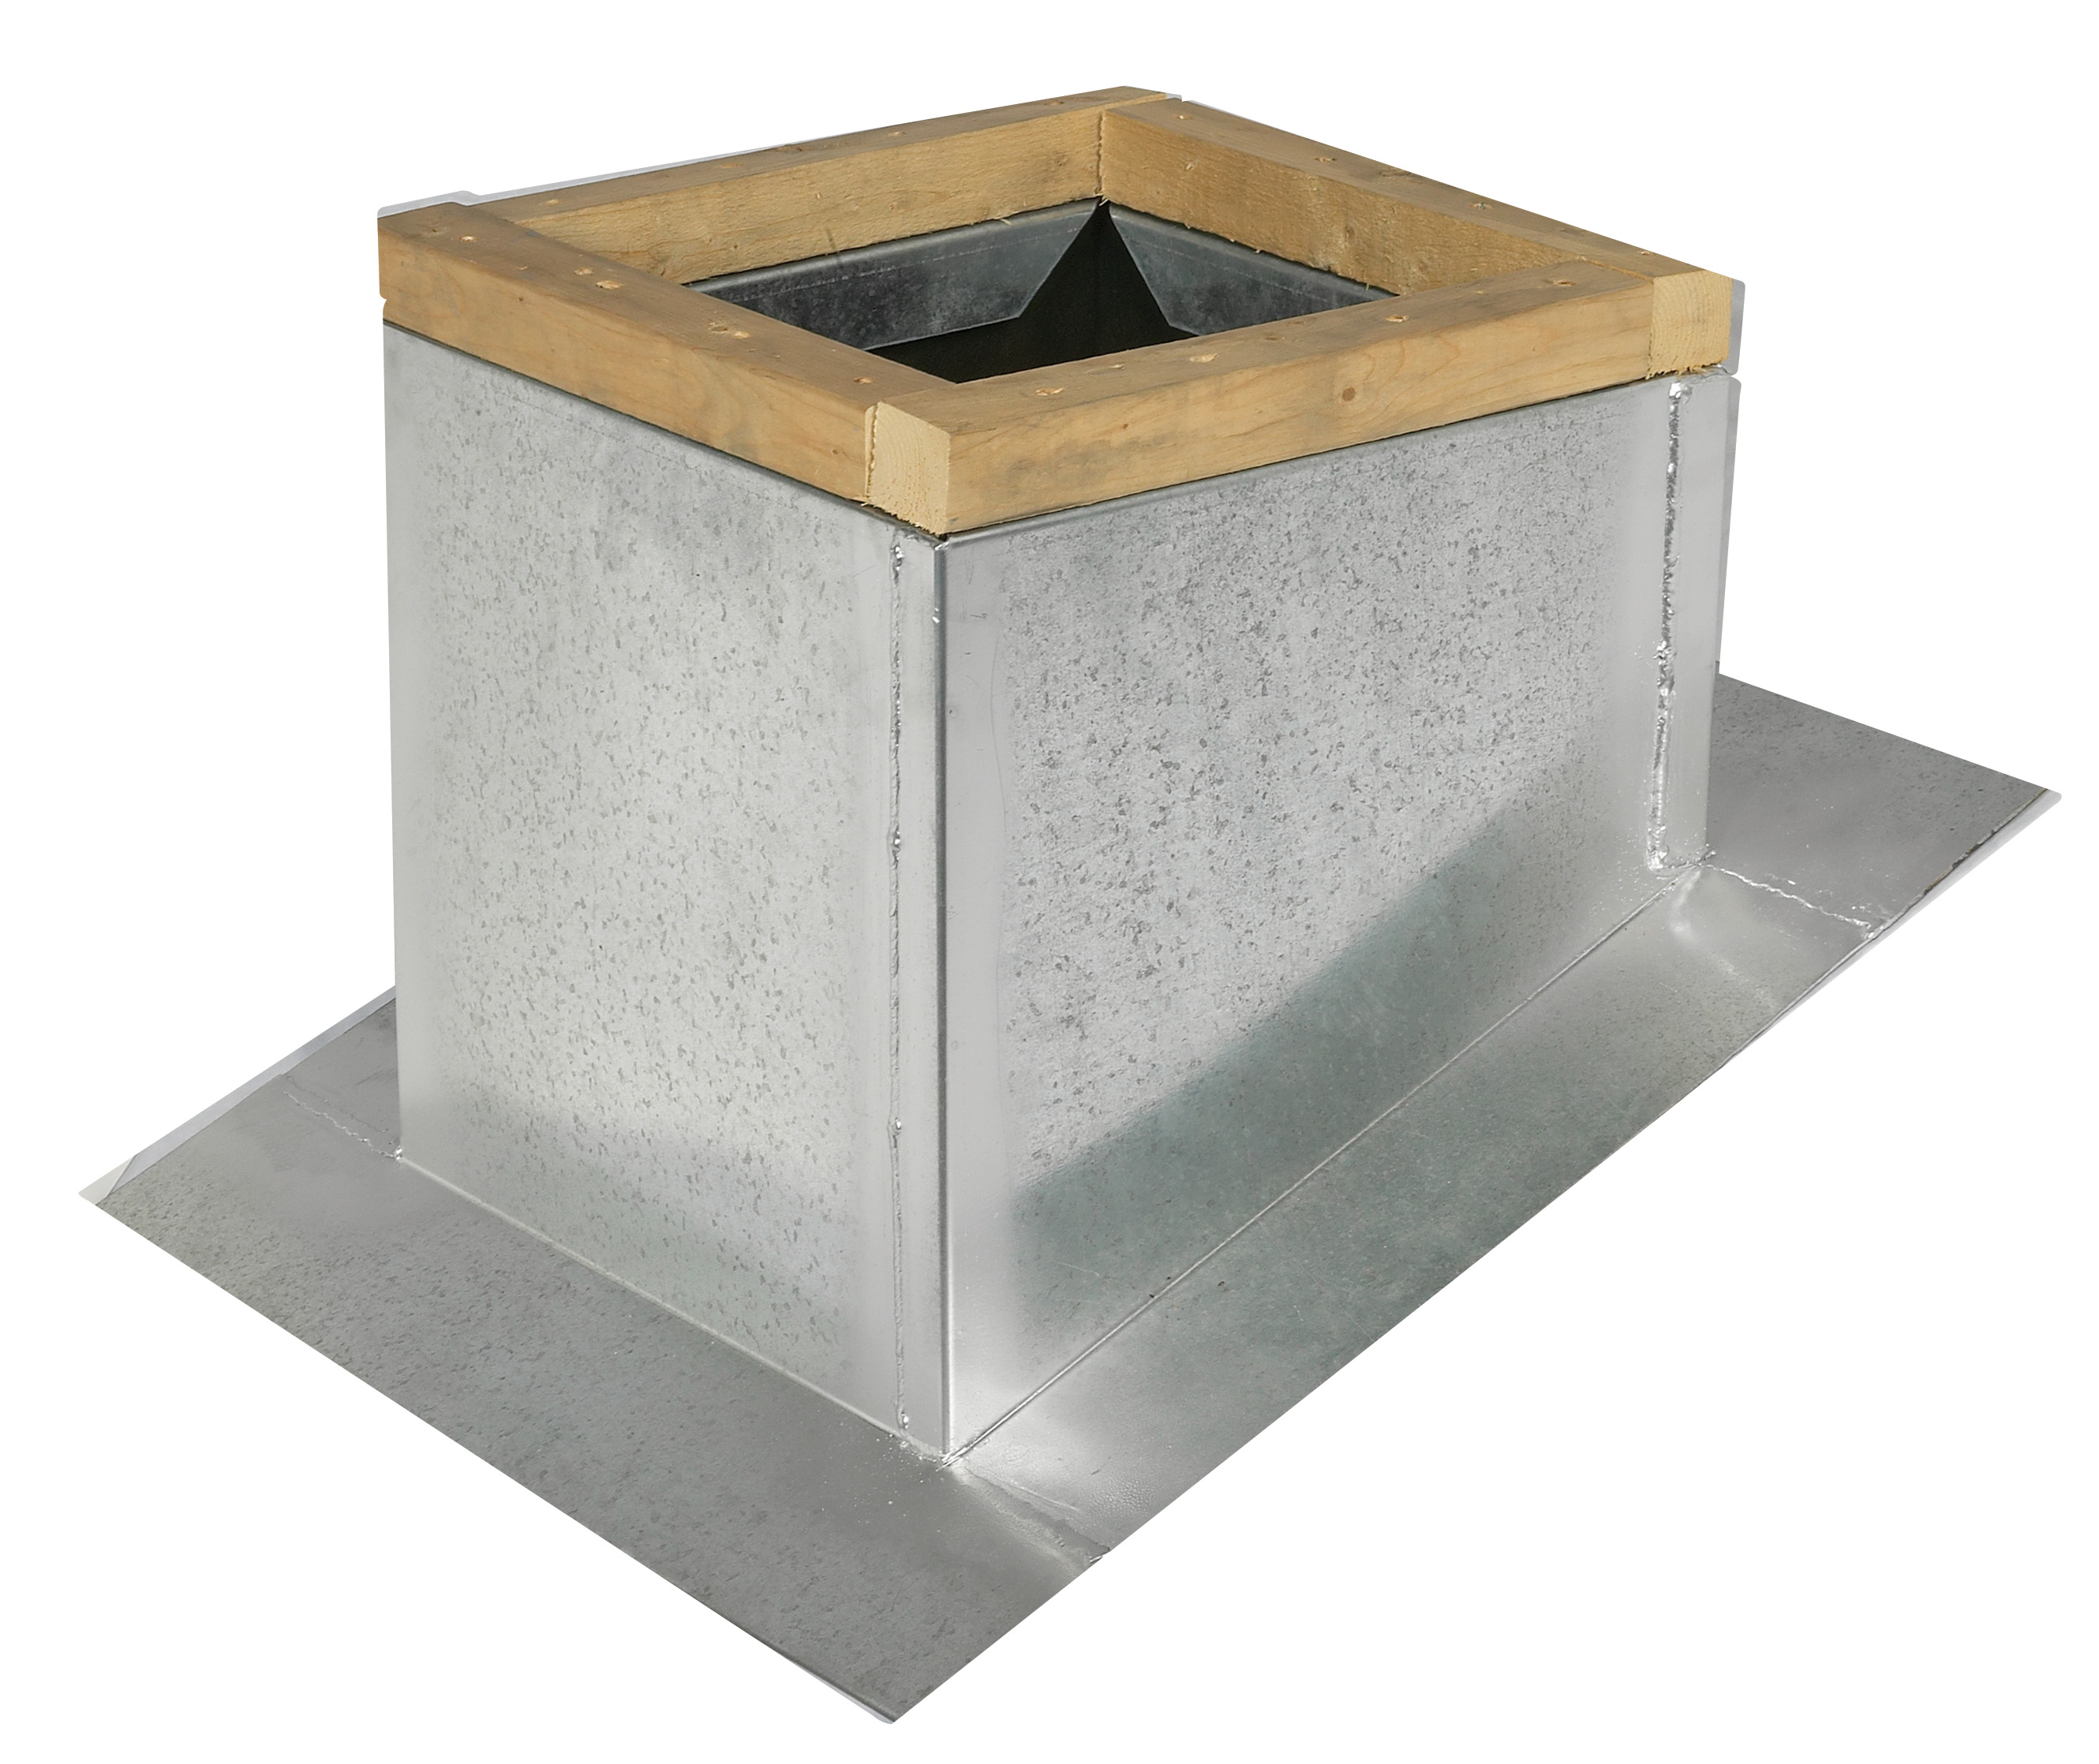 Steel Self Flashing Pitched Roof Curb Ls Sfp Lloyd